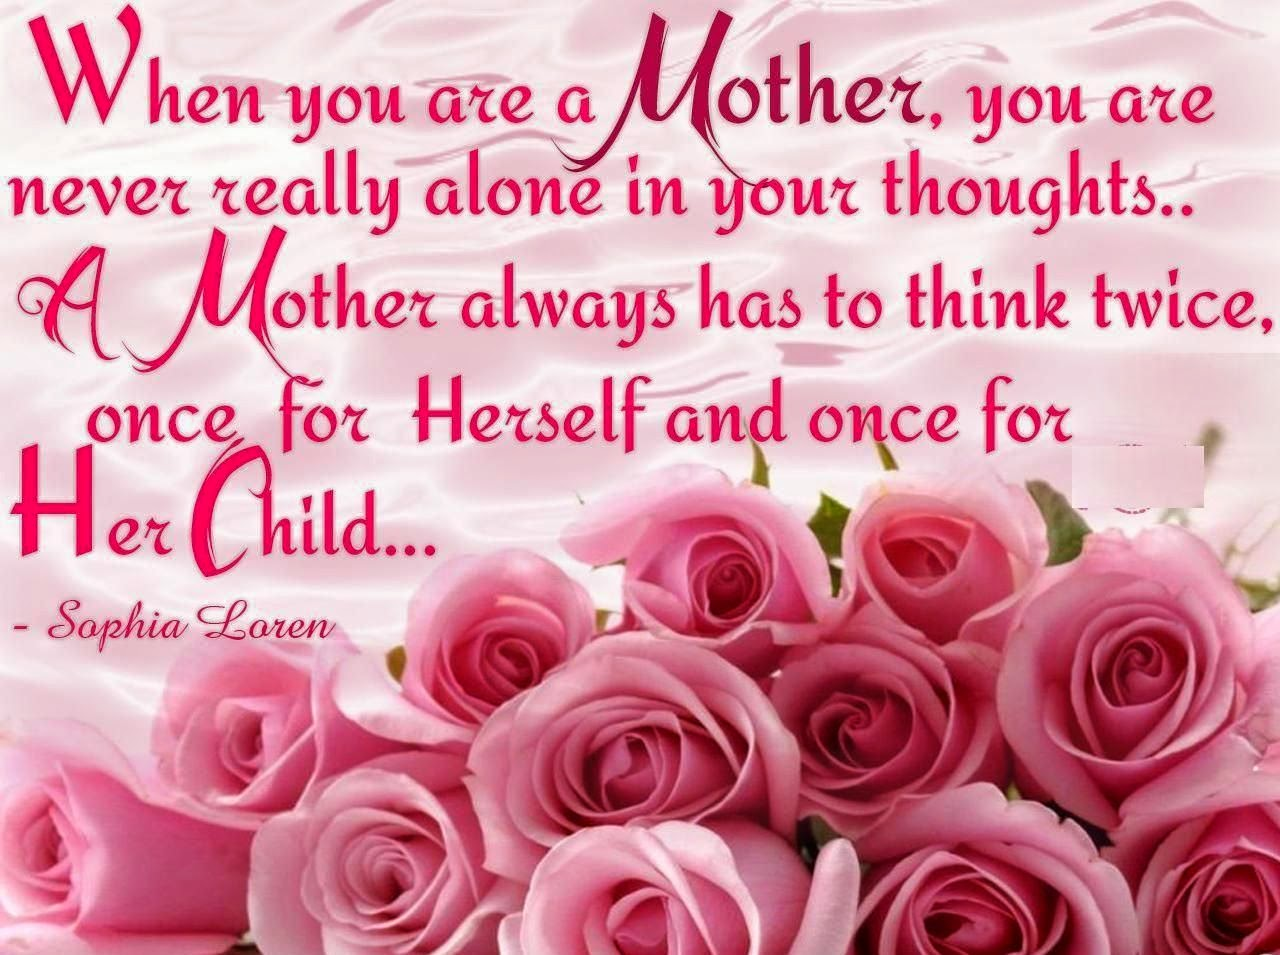 Happy Mothers Day Greeting Cards 2016 - Free Download